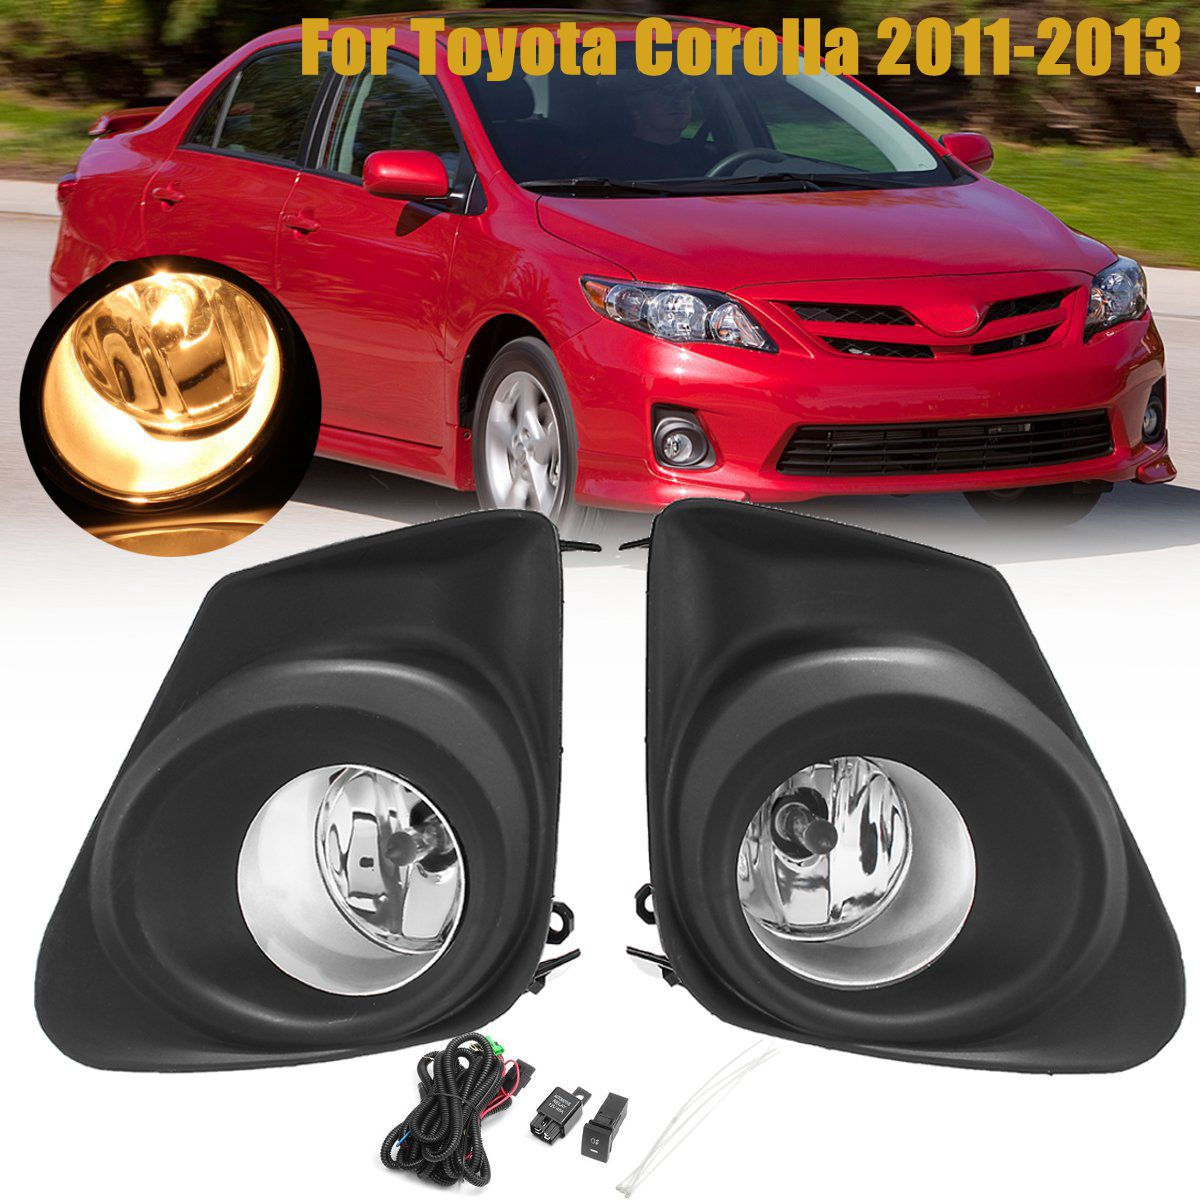 FOR Toyota 2011-2013 Corolla Fog Light Cover Trim Lh With Fog Lamp Hole